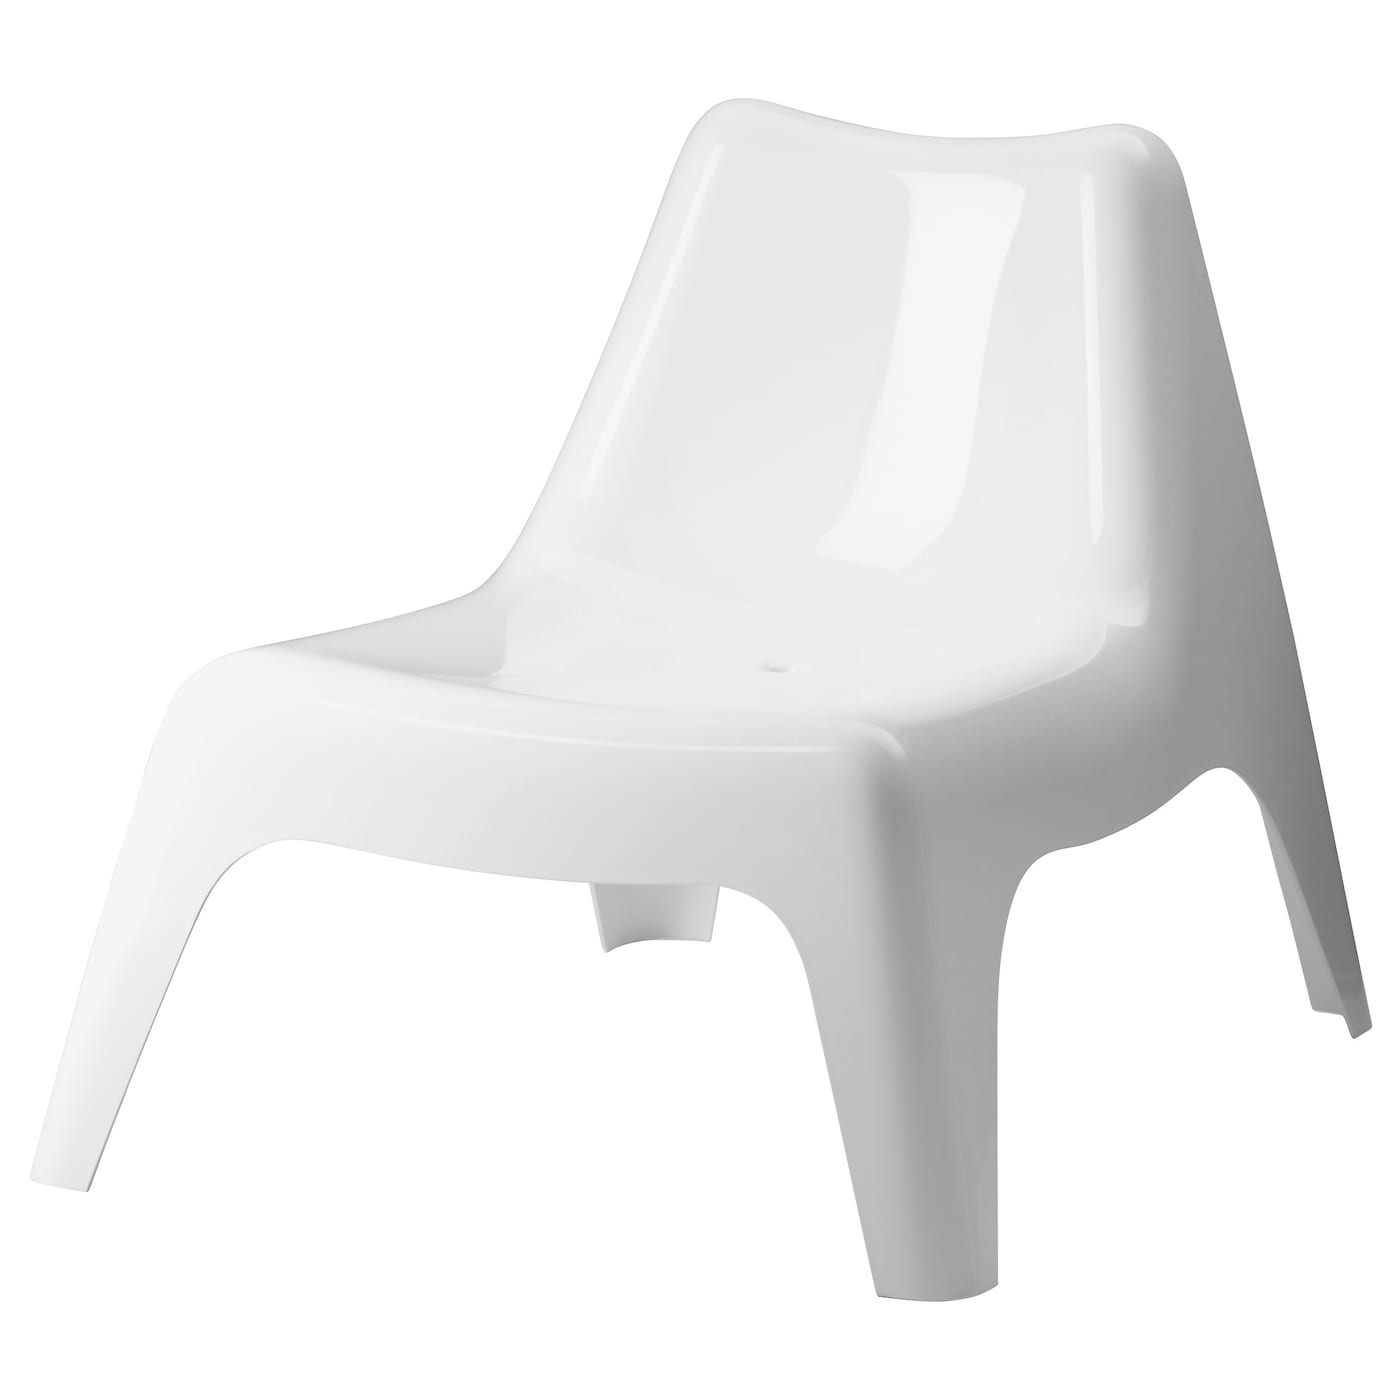 Outdoor garden seating ikea ireland dublin - Mobilier enfant ikea ...